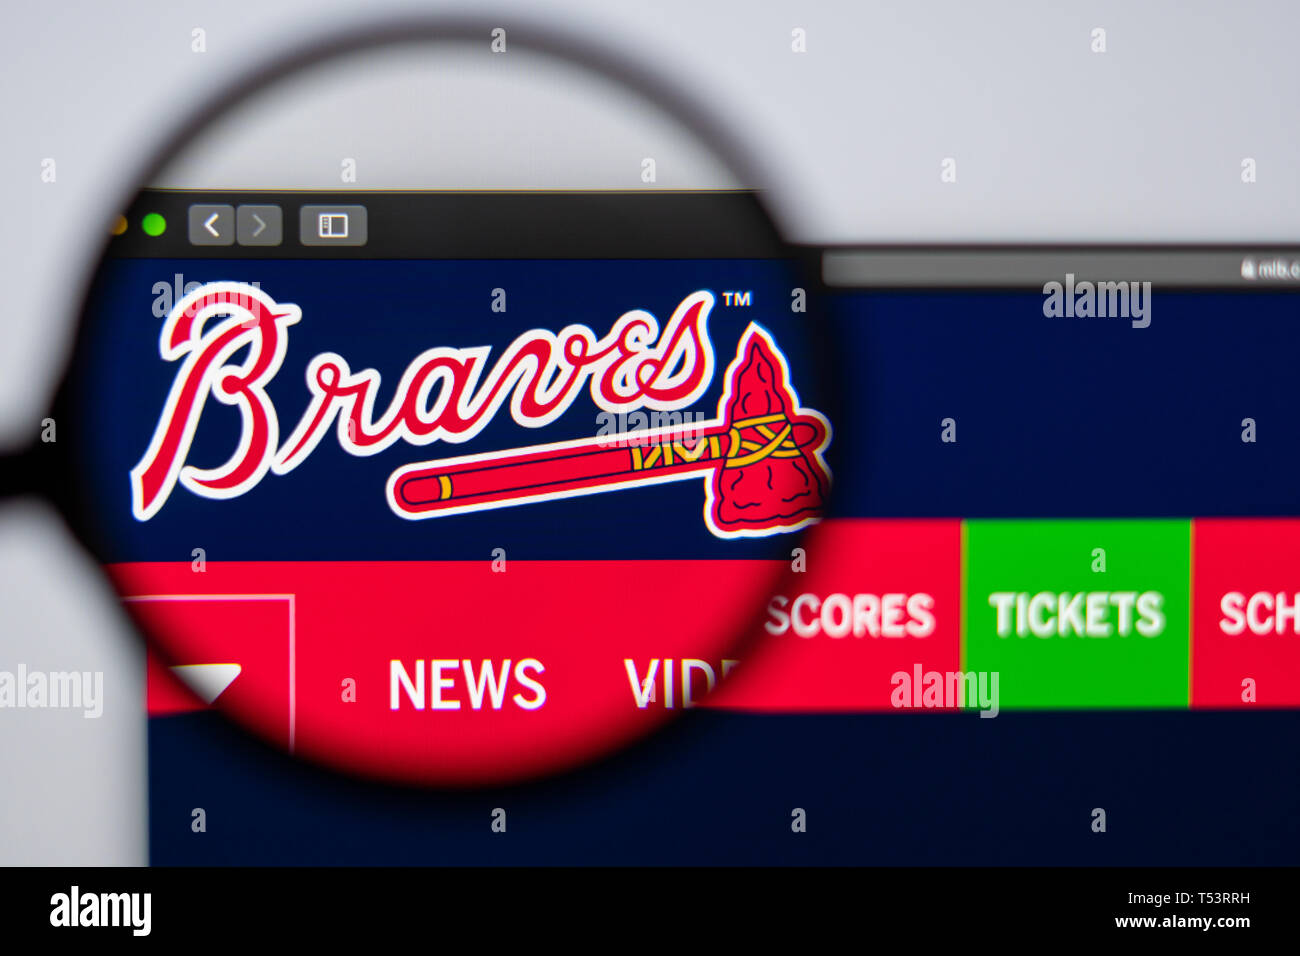 baseball team atlanta braves